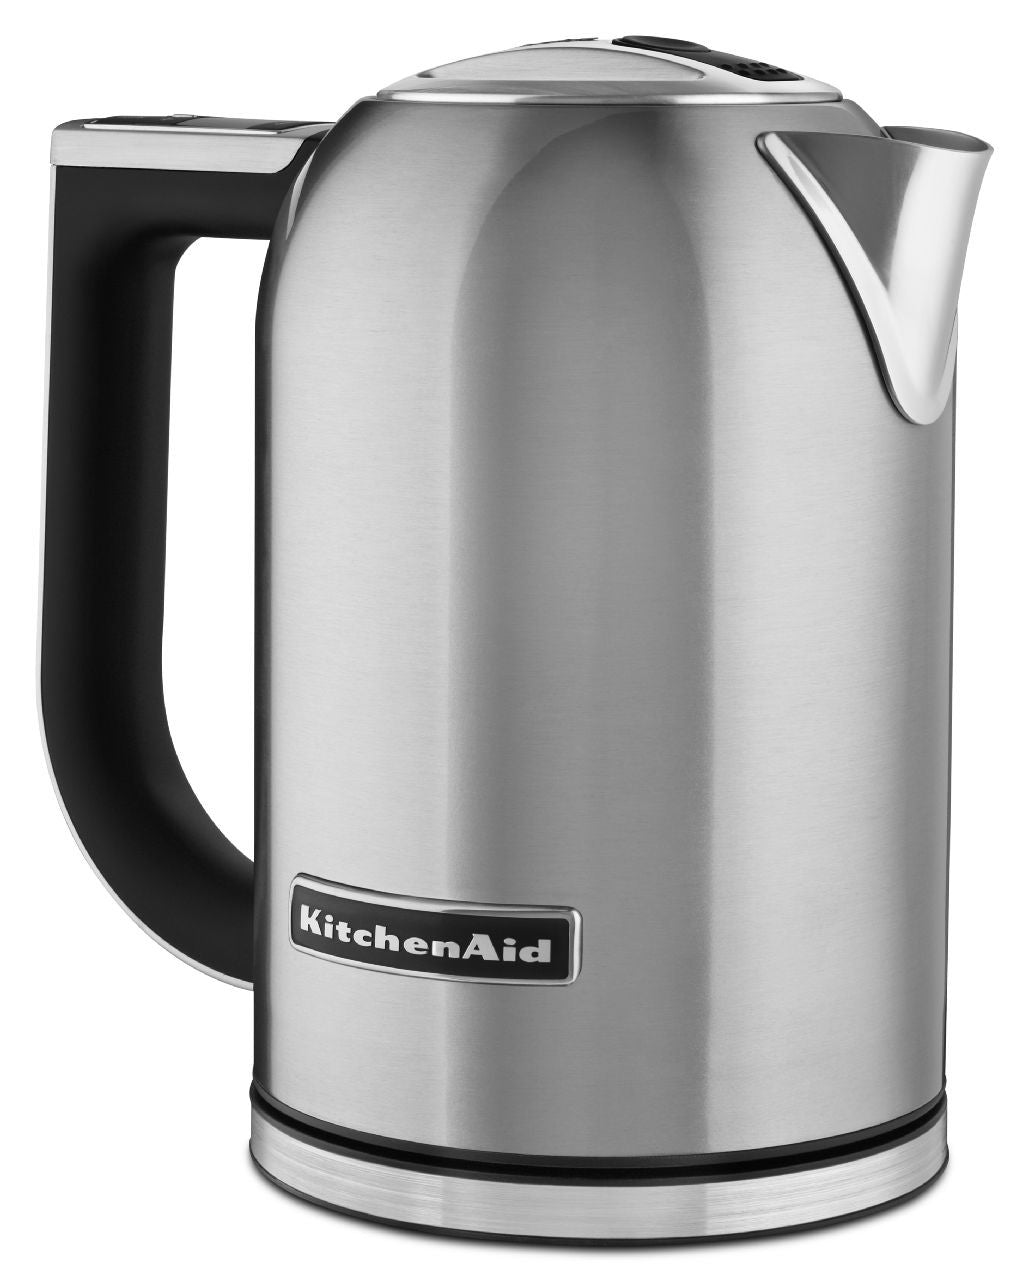 KitchenaidAid 1.7 Liter Electric Kettle with LED display - Brushed Stainless Steel KEK1722SX